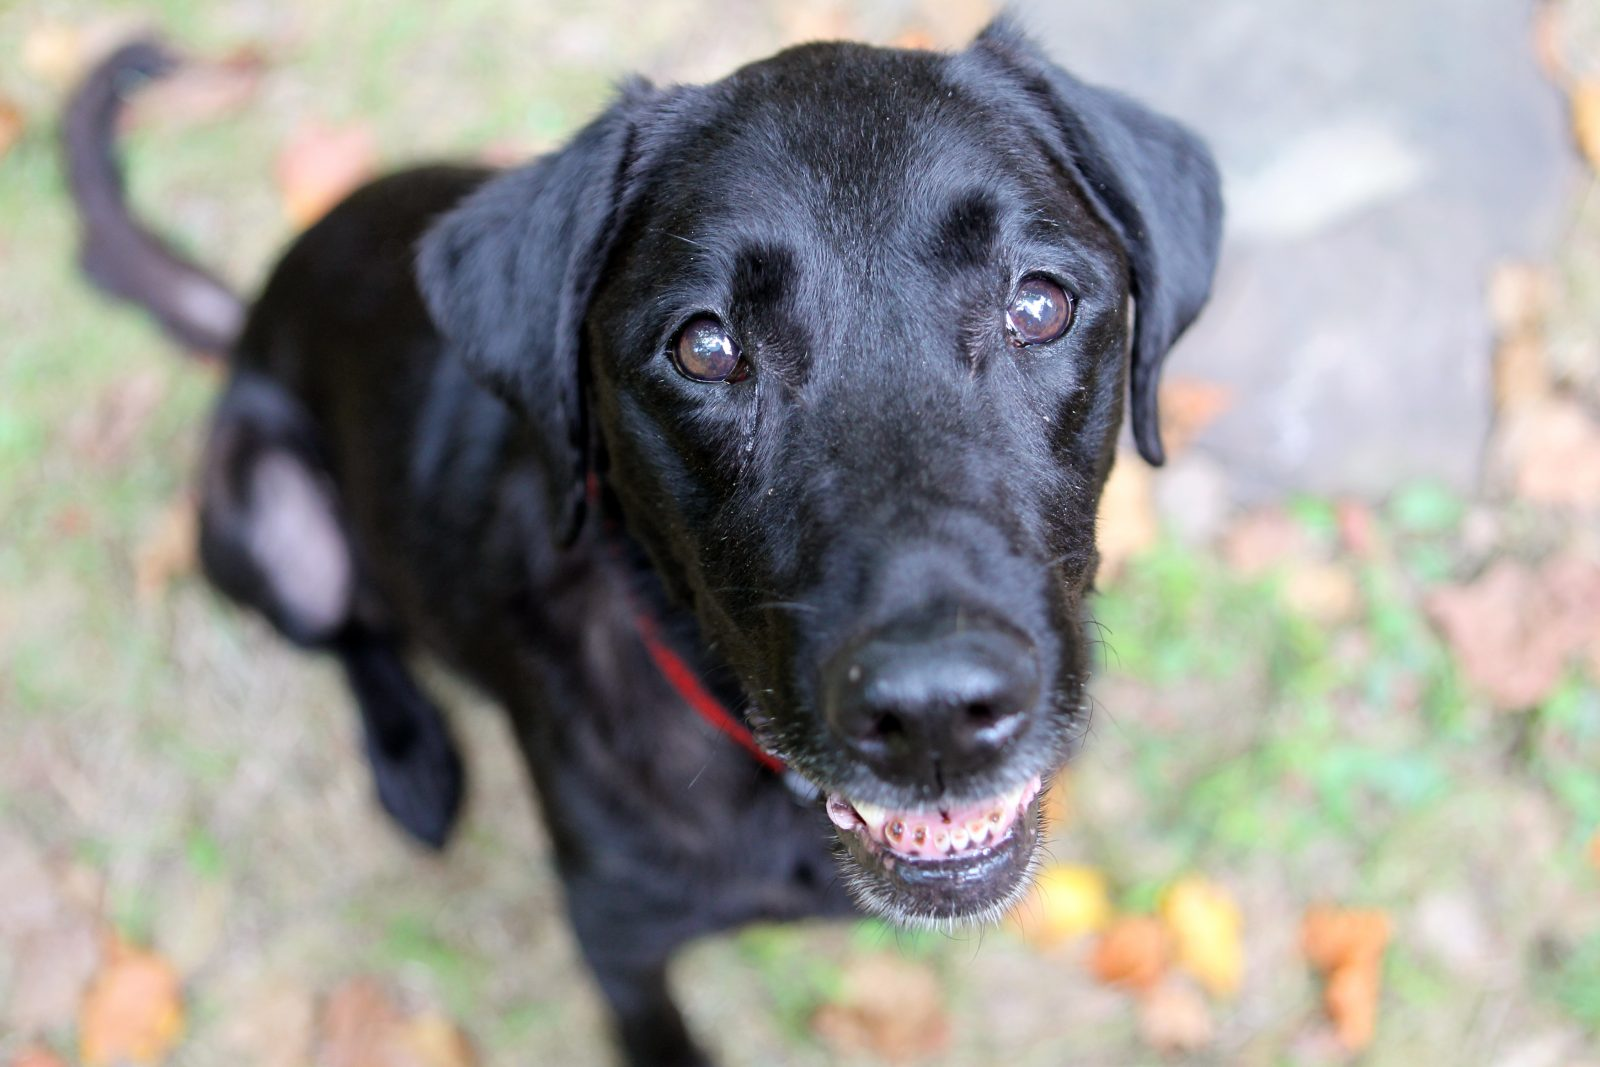 Red, a 12-year-old Labrador who is retired as an active search dog, sits in her yard in Annapolis, Maryland, August 18, 2011. Not long after American Airlines flight 77 crashed into the Pentagon on September 11, 2001, Red was at work. She was 18 months old and only recently certified as a rescue dog, a rookie among more veteran canines. For weeks, Red navigated the hazards of the rubble piles amid the clatter and chaos following 9/11. Picture taken August 18, 2011.